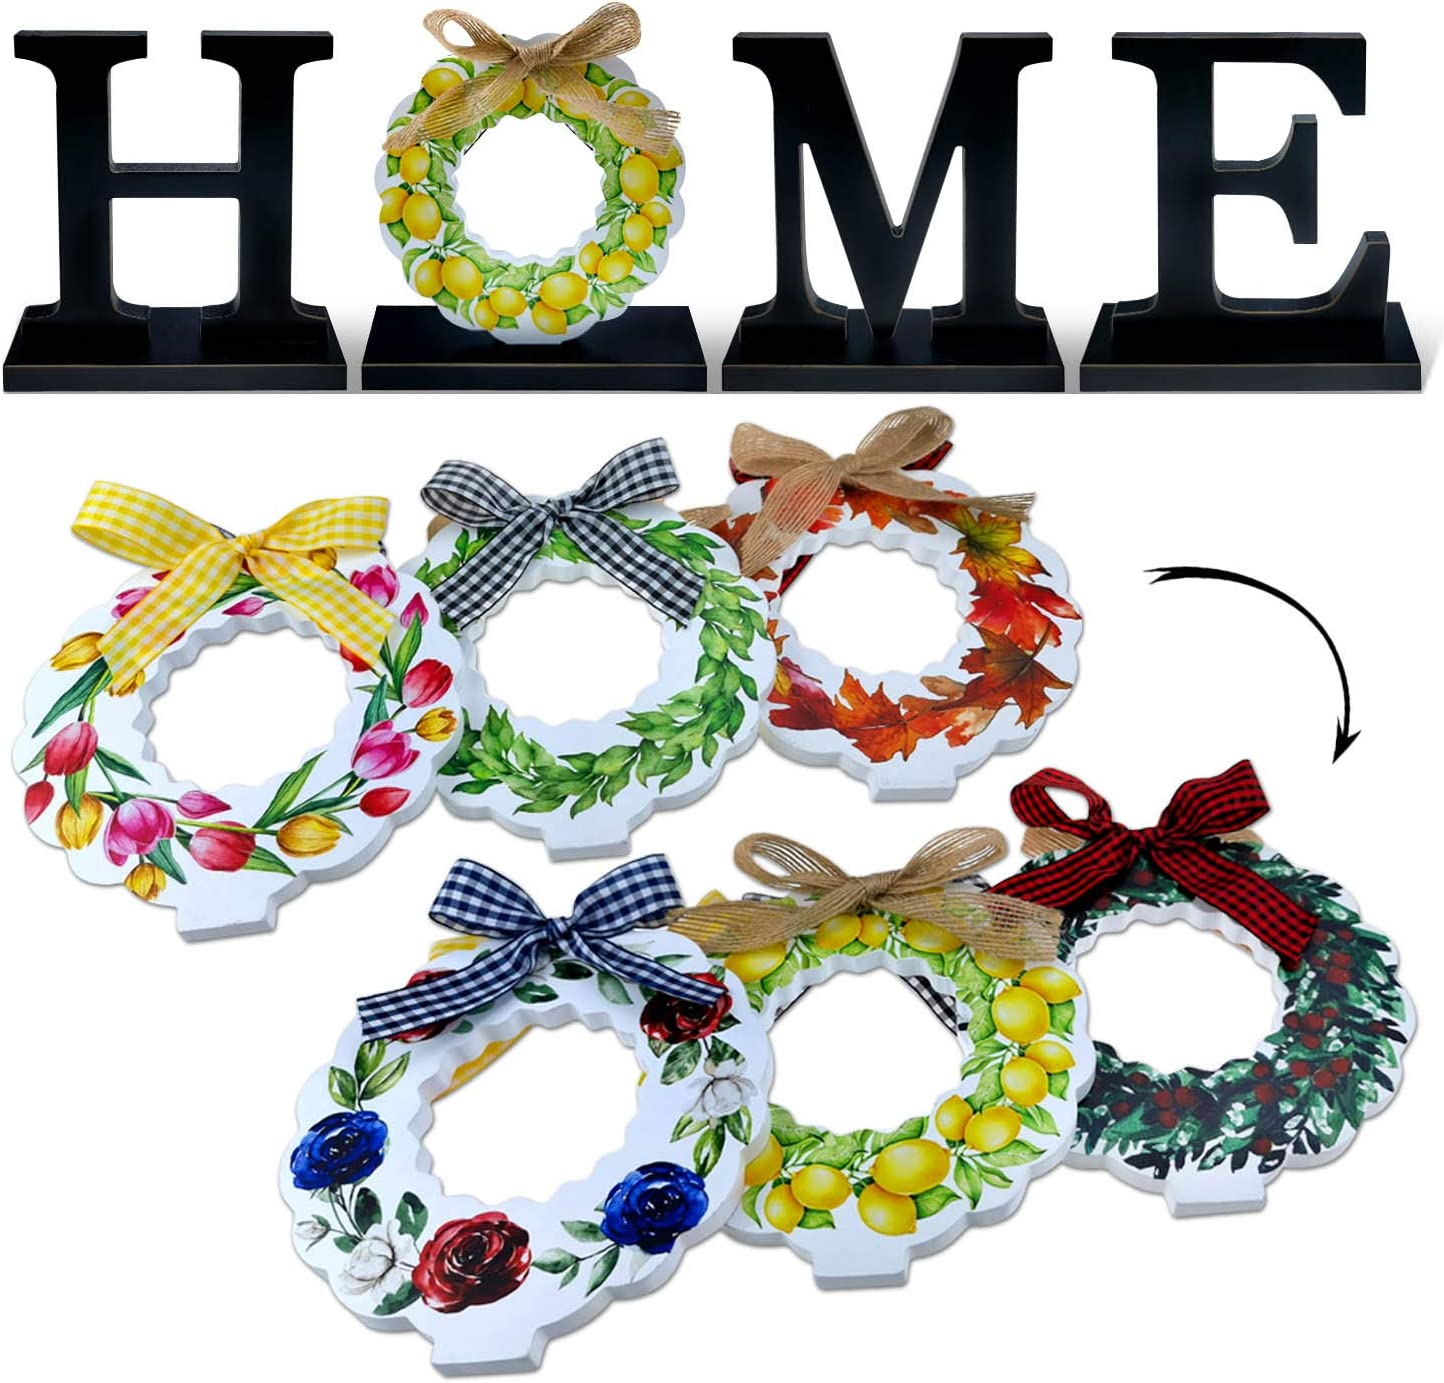 Winder Rustic Home Decor Home Sweet Home Sign with 3-PC Wreath Decorative Wooden Letters with 2-Side Seasonal Interchangeable Holiday for Spring Easter Lemon Summer 4th of July Shelf Decor 6''H x 6''W